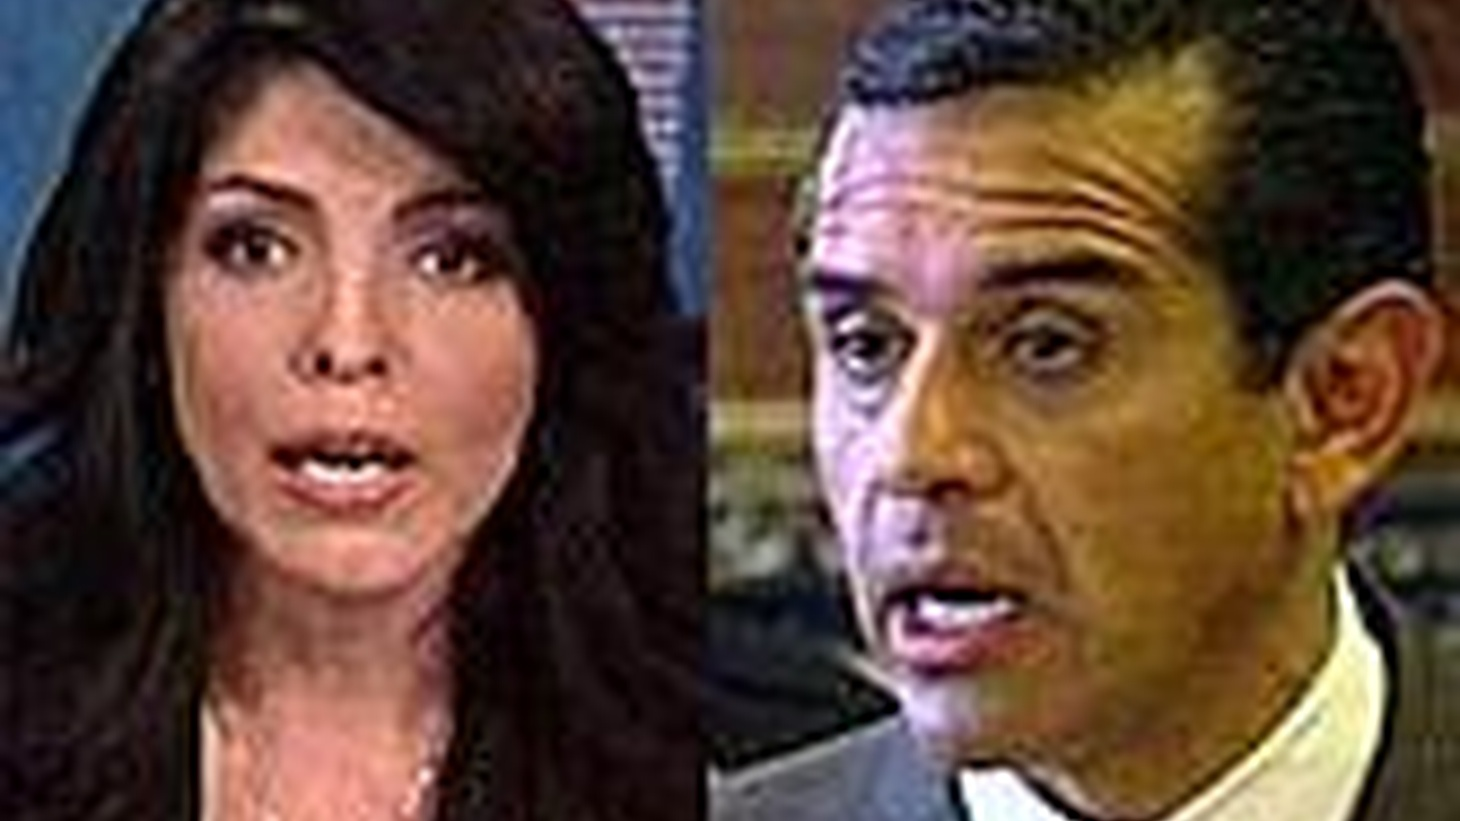 Those who yearn for a more tabloid news culture in Los Angeles are smiling this week. As most everybody now knows, Antonio Villaraigosa has a girlfriend on the side. He's had her for most of the two years he's been in charge at City Hall...